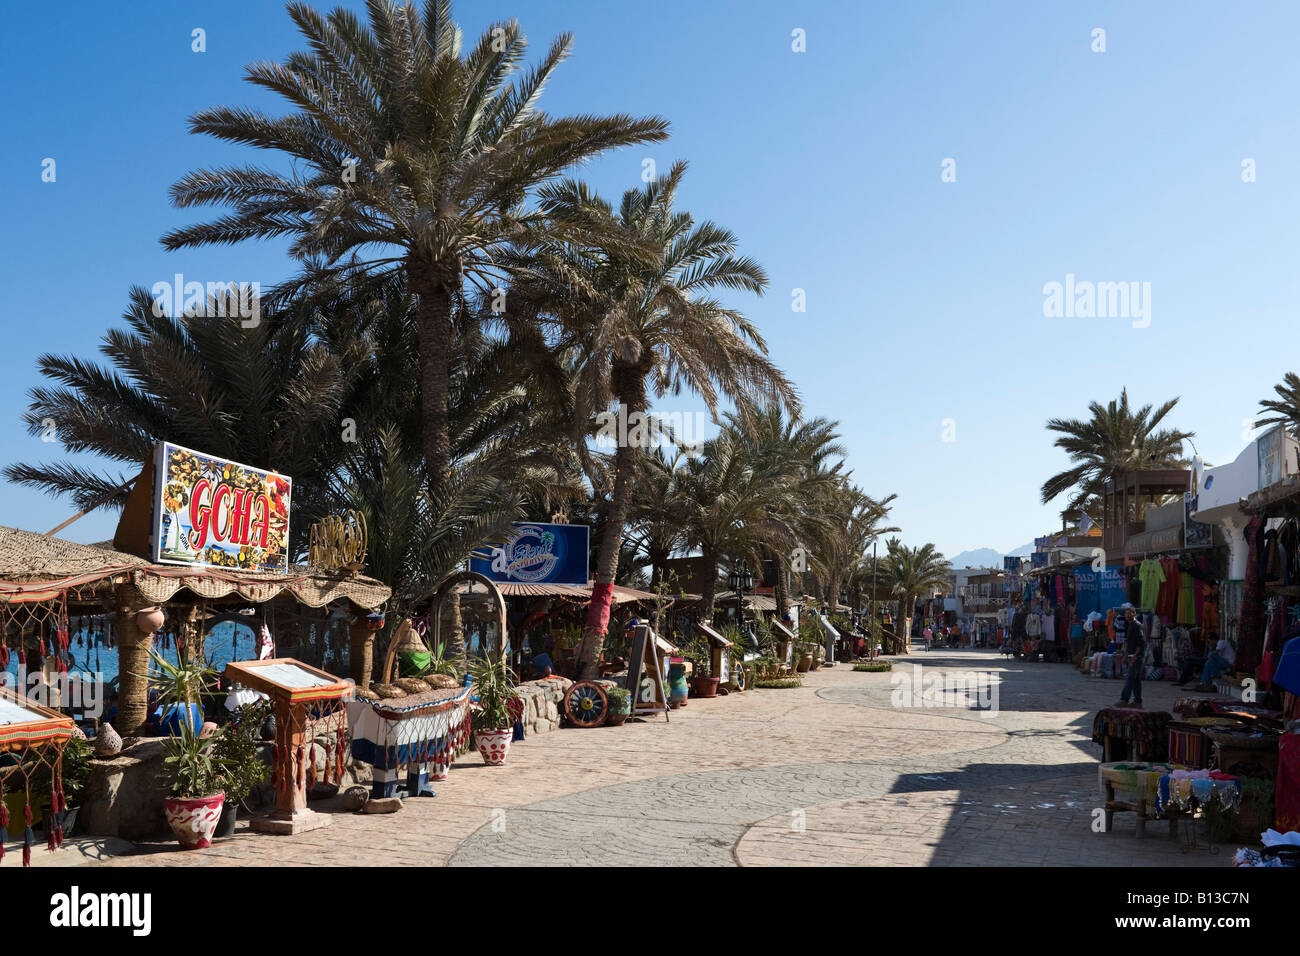 Shops and restaurants on Masbat seafront in Asilah, Dahab, Gulf of Aqaba, South Sinai, Red Sea Coast, Egypt - Stock Image